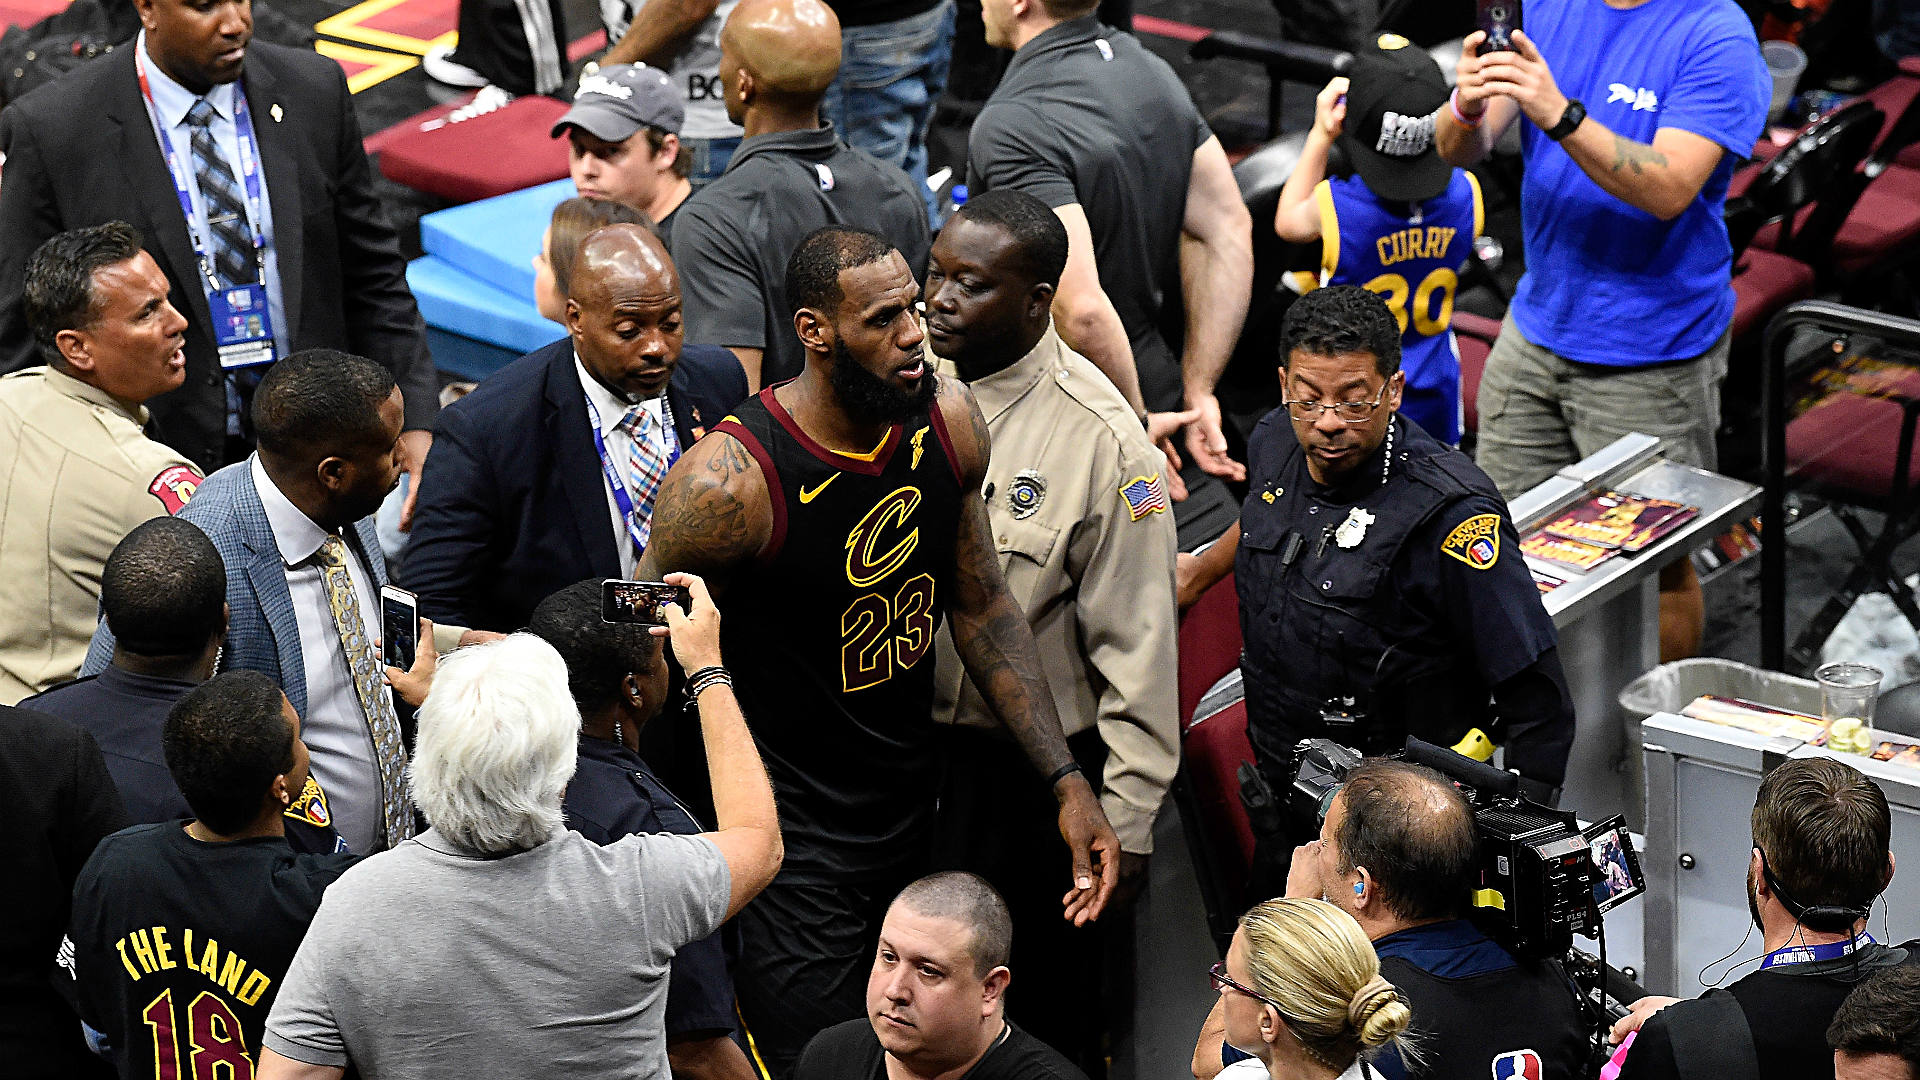 65a692252fbe LeBron James suffered hand injury after punching white board following Game  1 loss